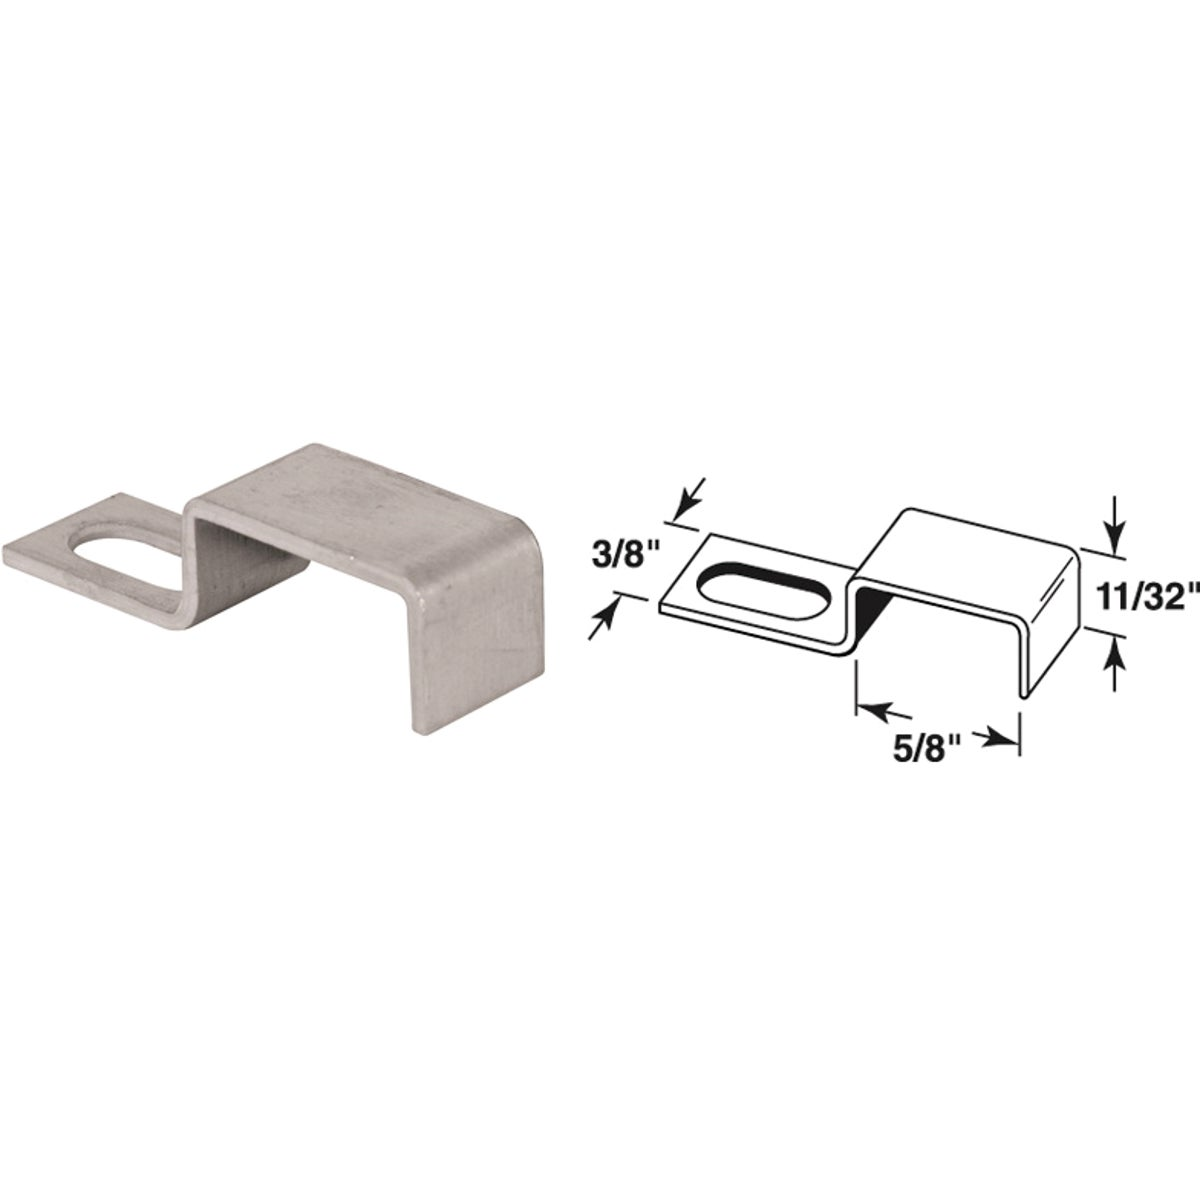 STORM WINDOW PANEL CLIPS - 182031 by Prime Line Products